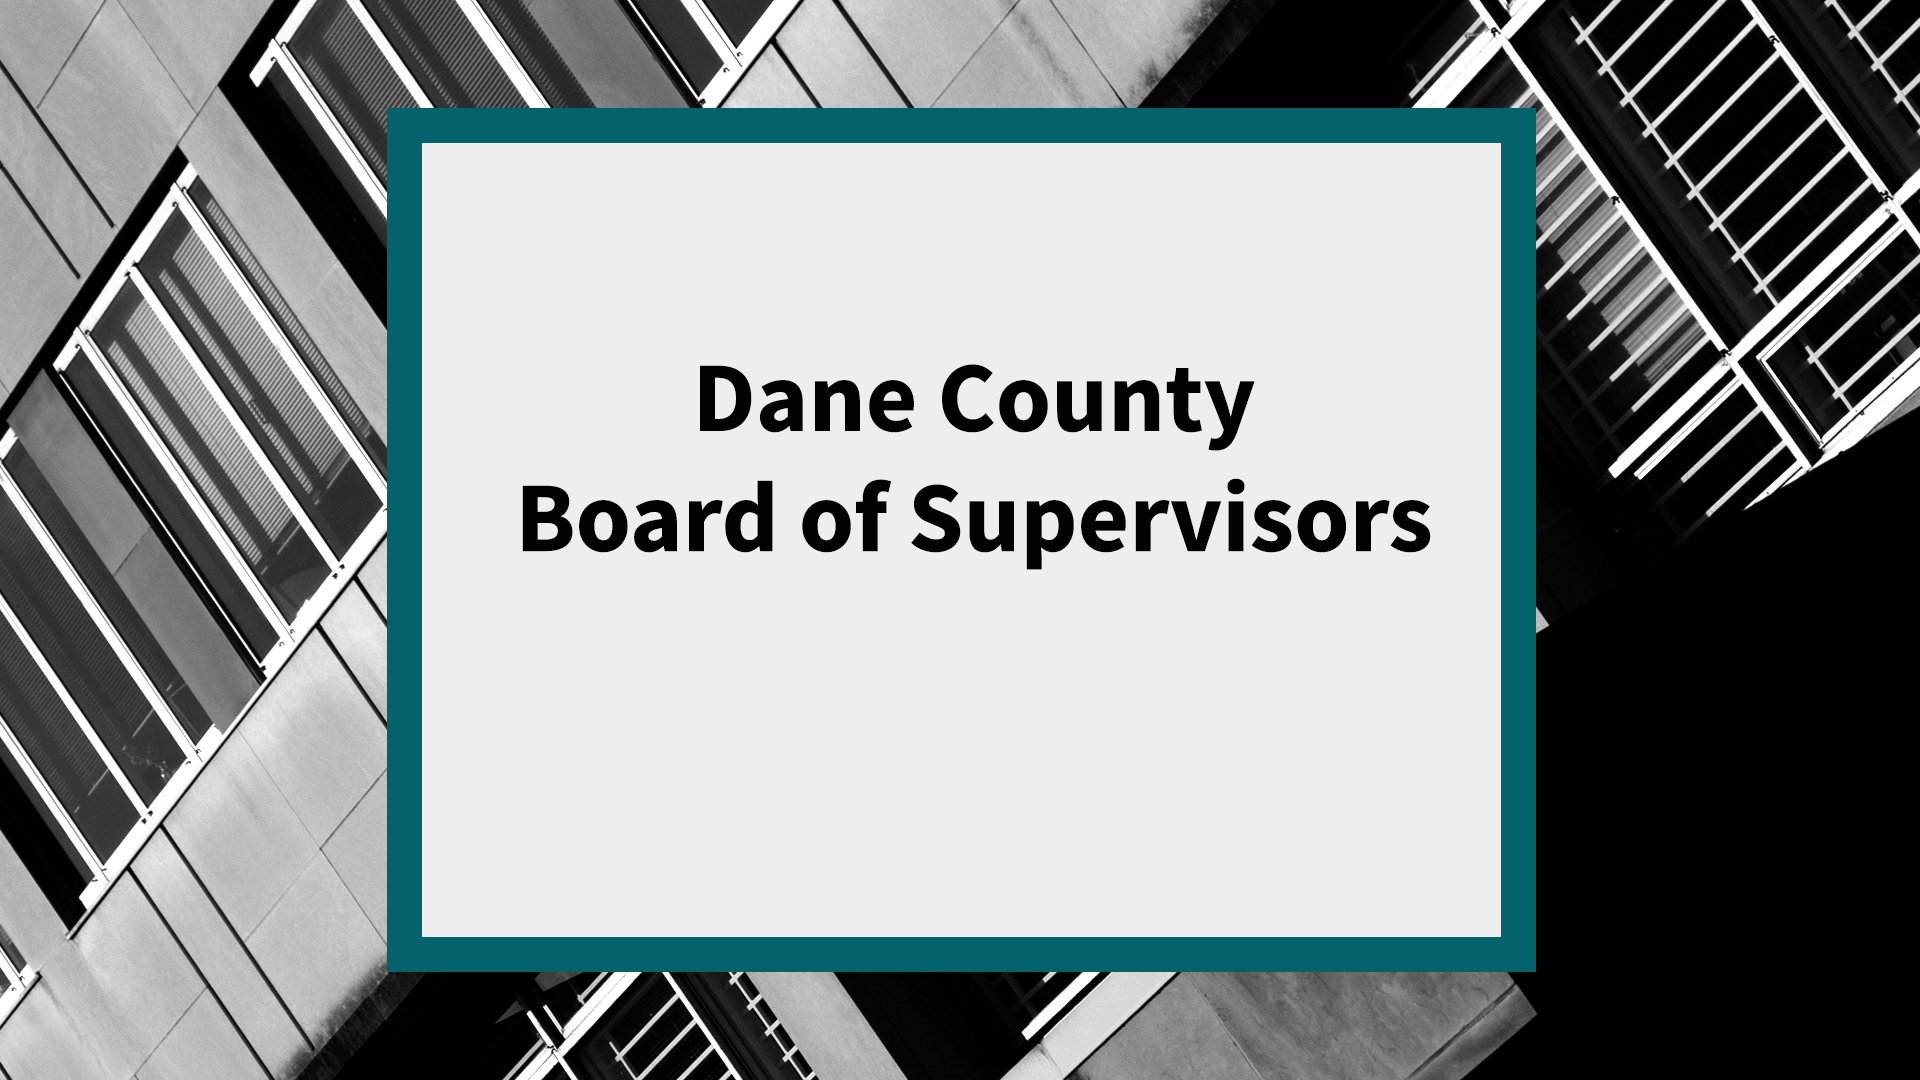 Dane County Board of Supervisors